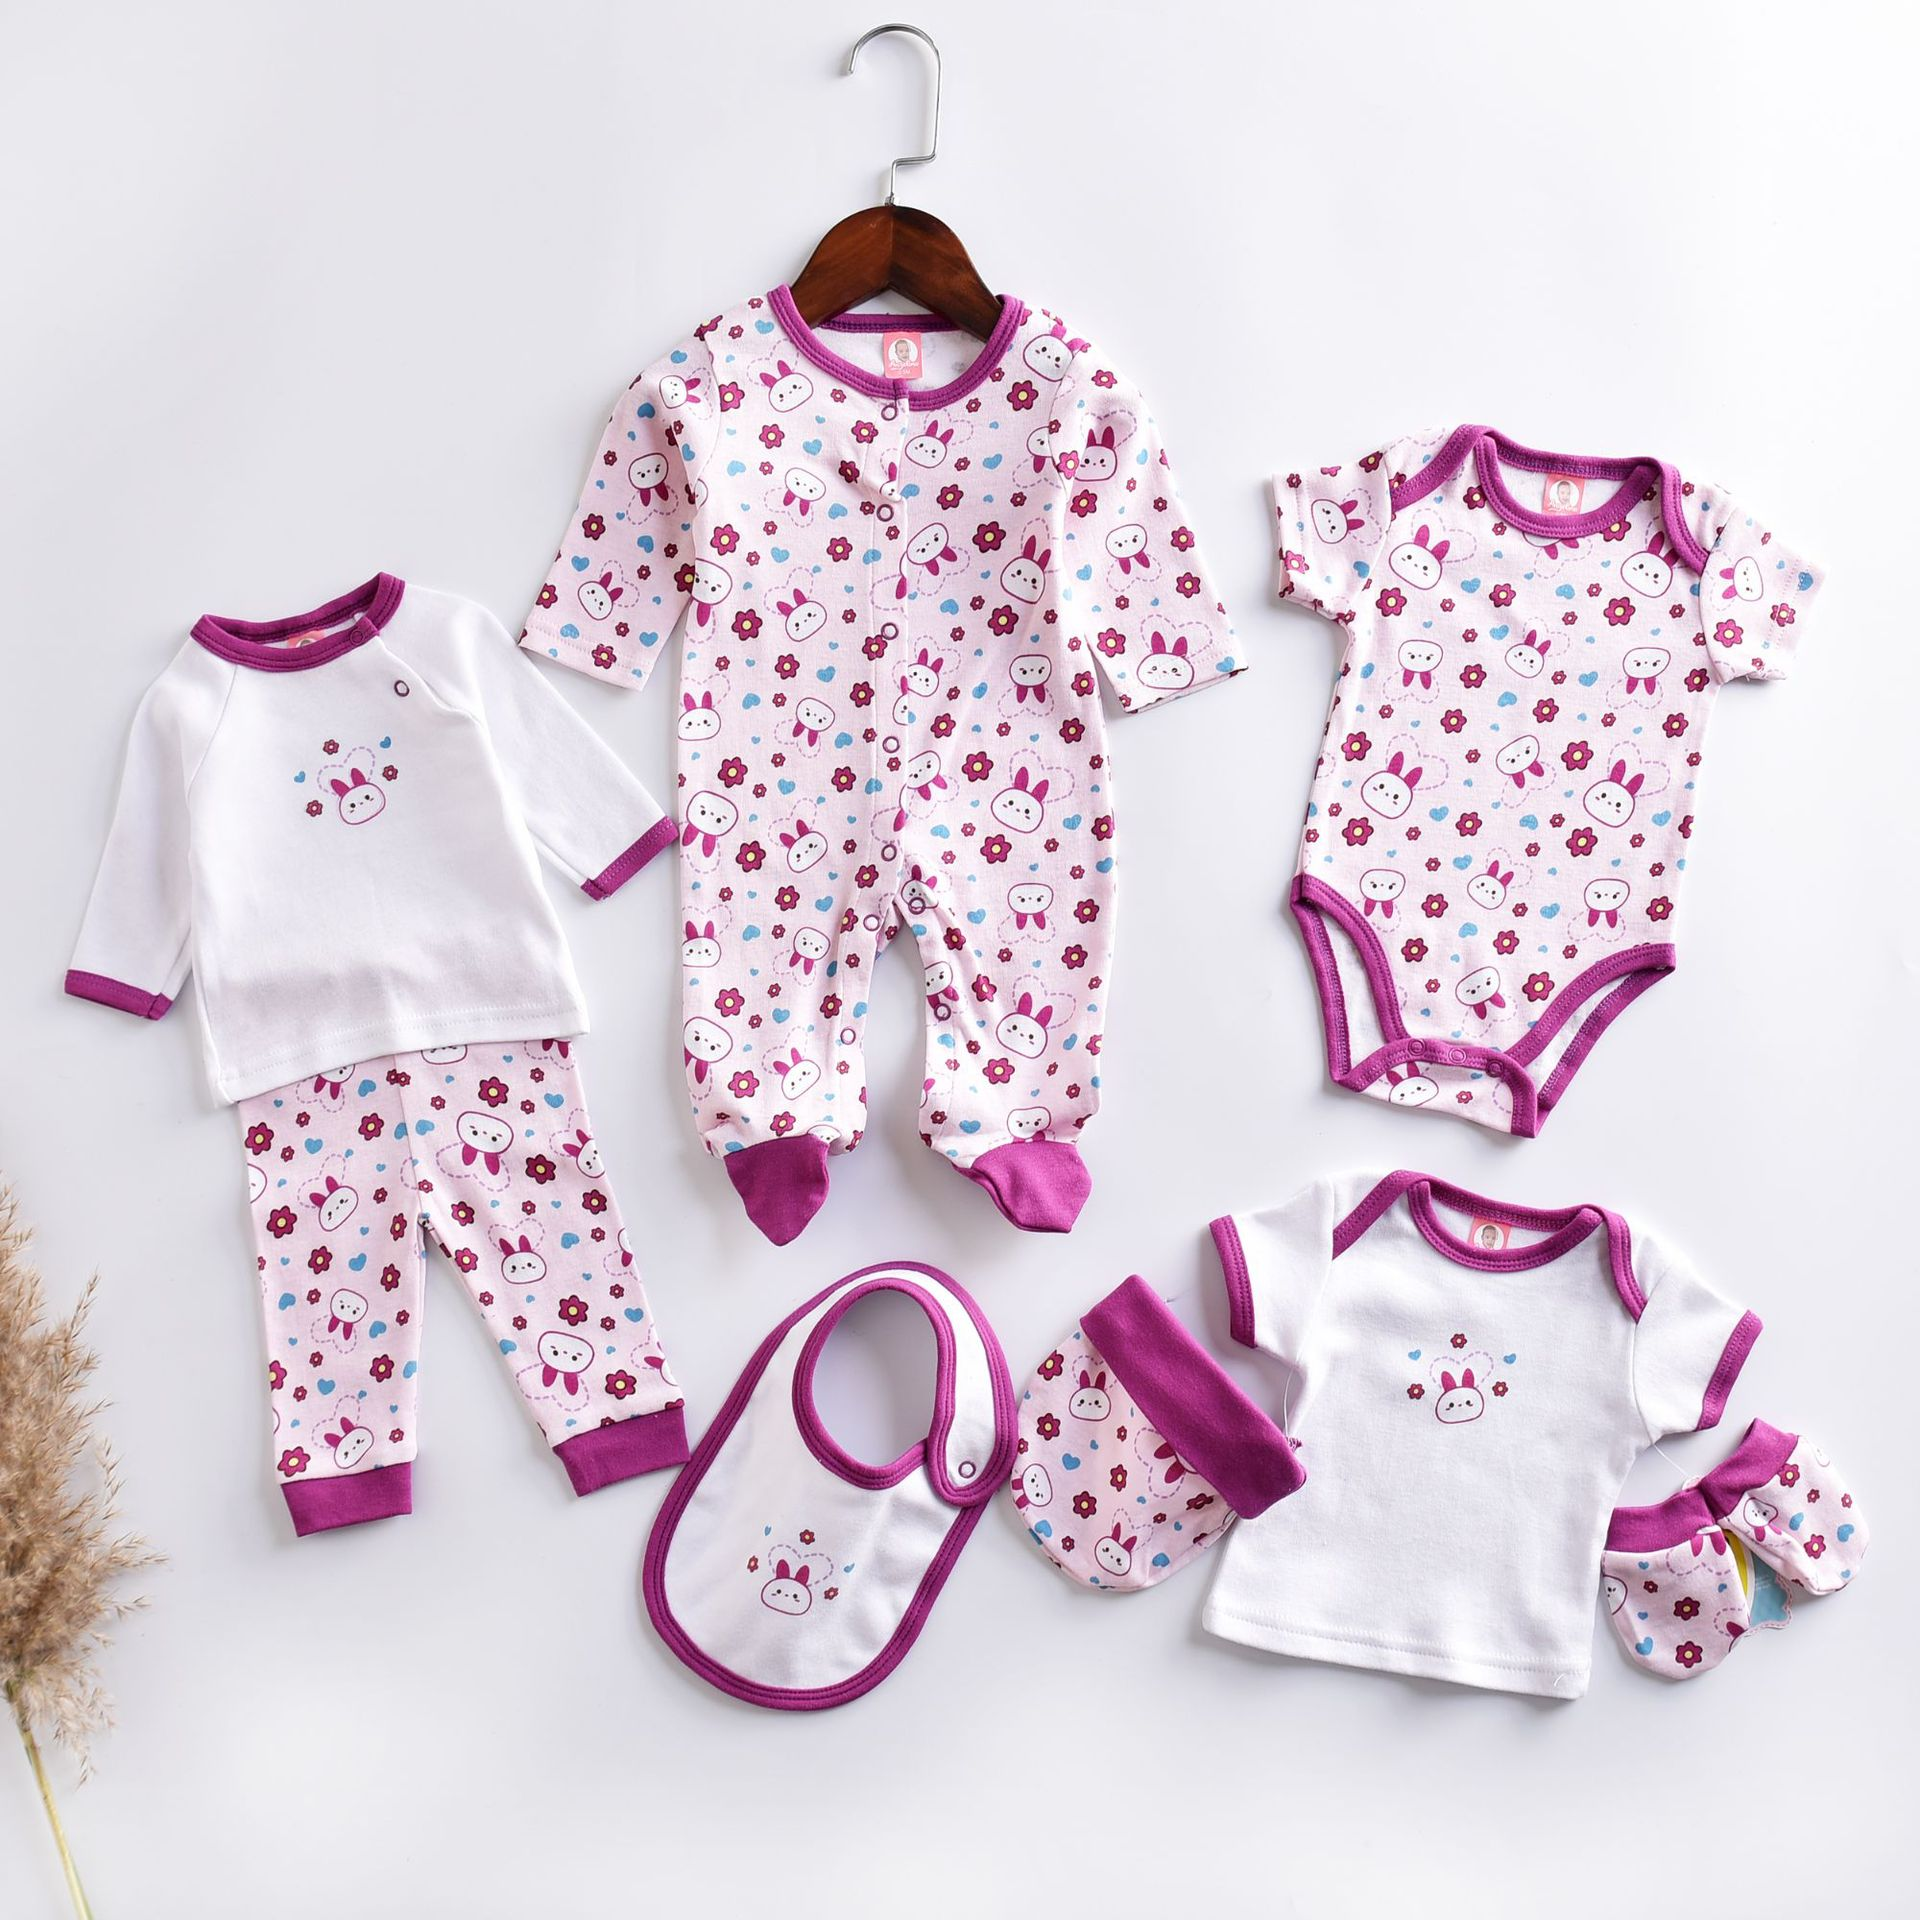 Newborn Baby Girl Dress Online Shopping